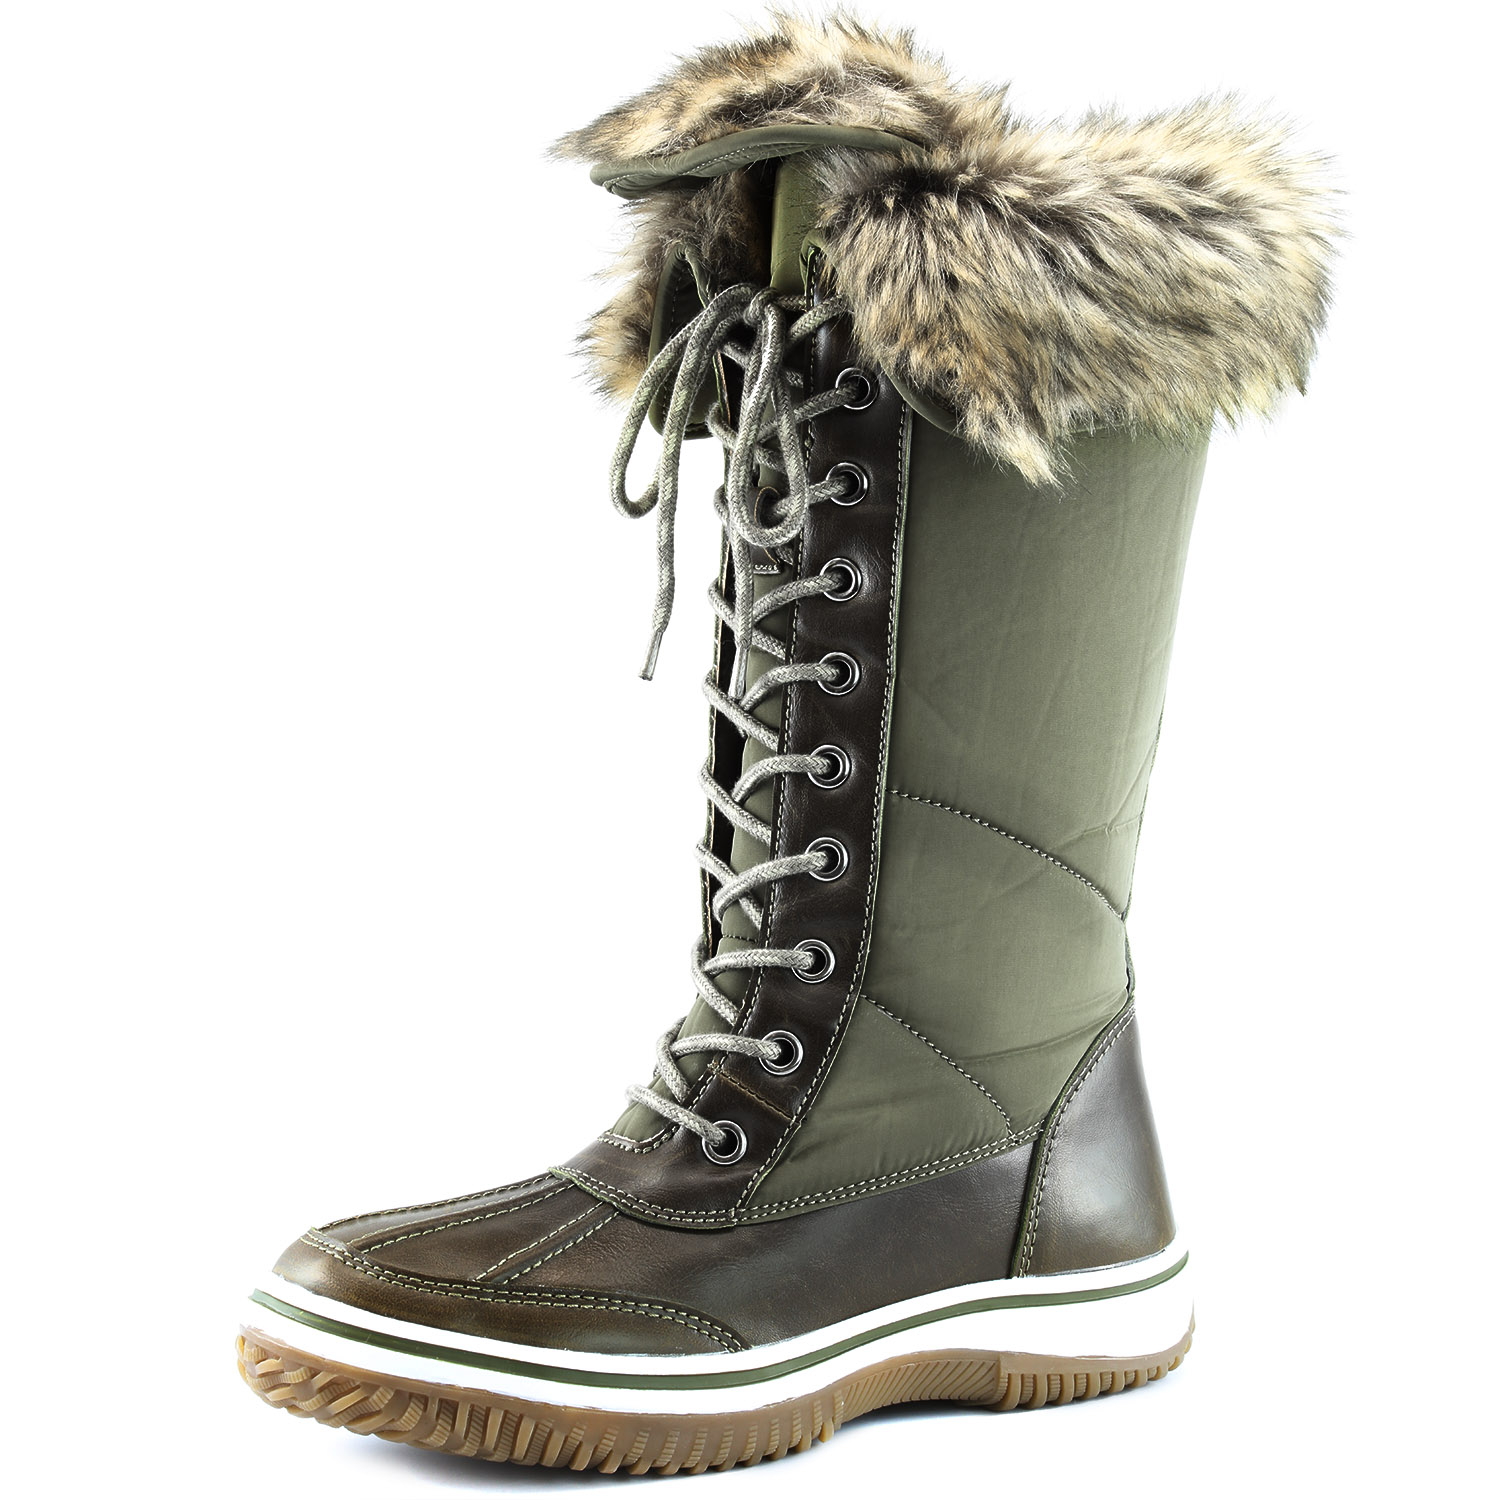 DailyShoes Winter Boots For Women